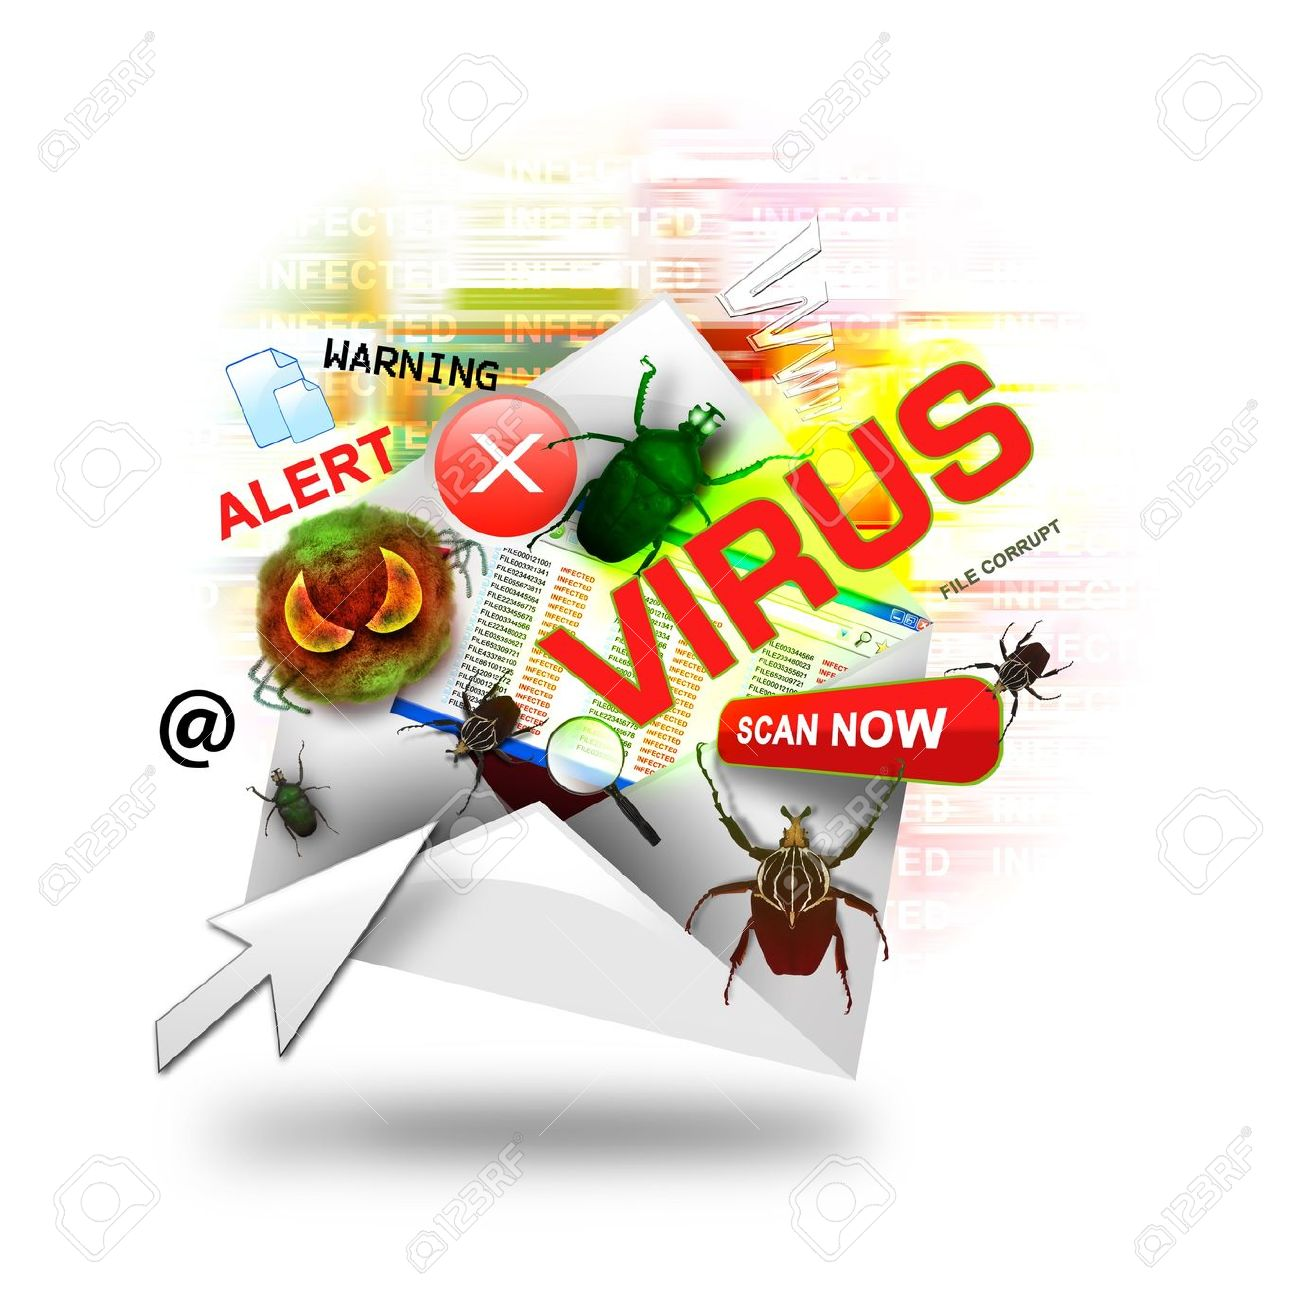 17352410-a-internet-email-is-open-with-various-computer-virus-icons-around-it-there-is-a-white-background-use